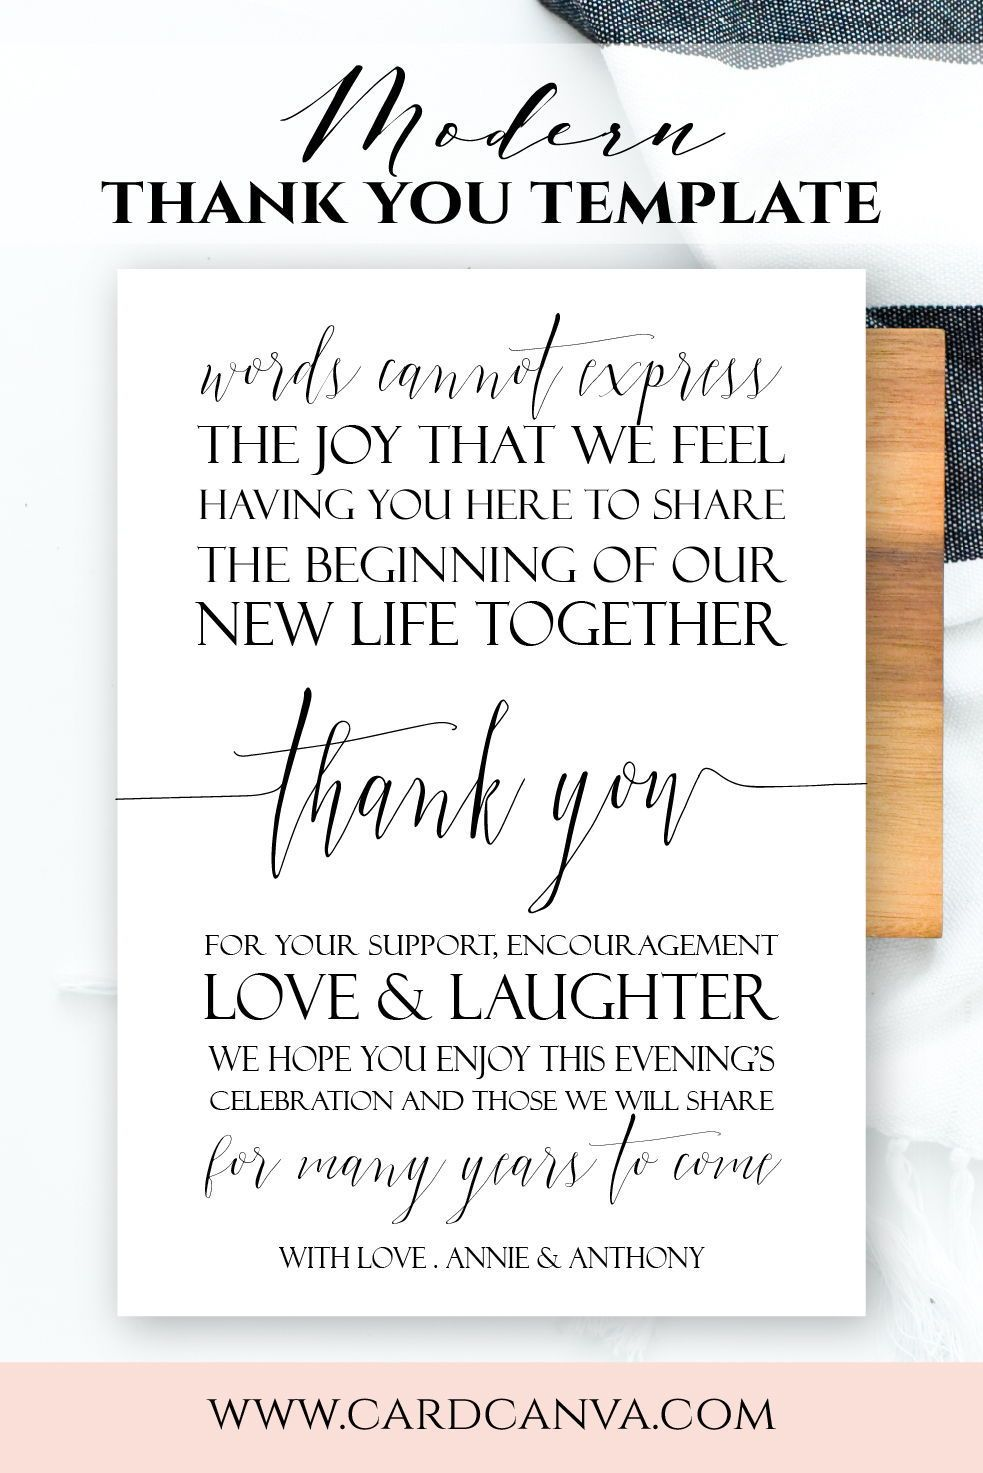 000 Staggering Wedding Welcome Letter Template Word Highest Clarity Full